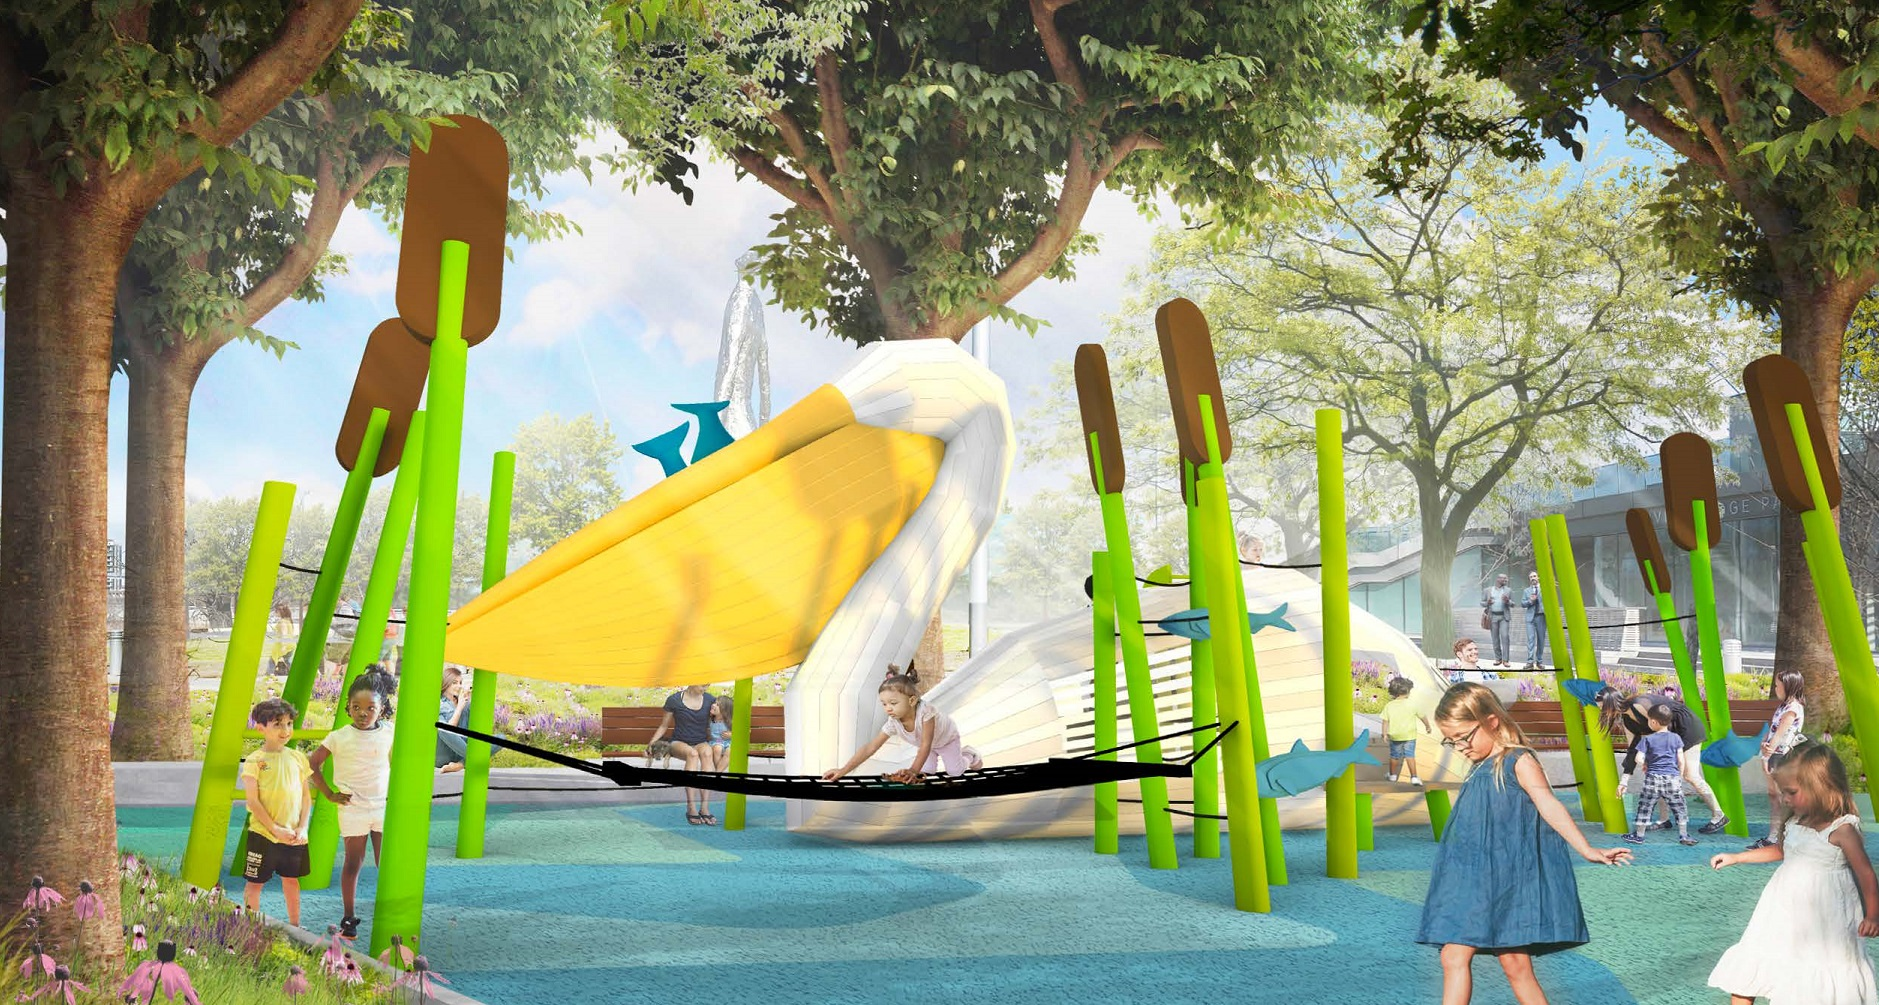 Belle's Play Garden Rendering